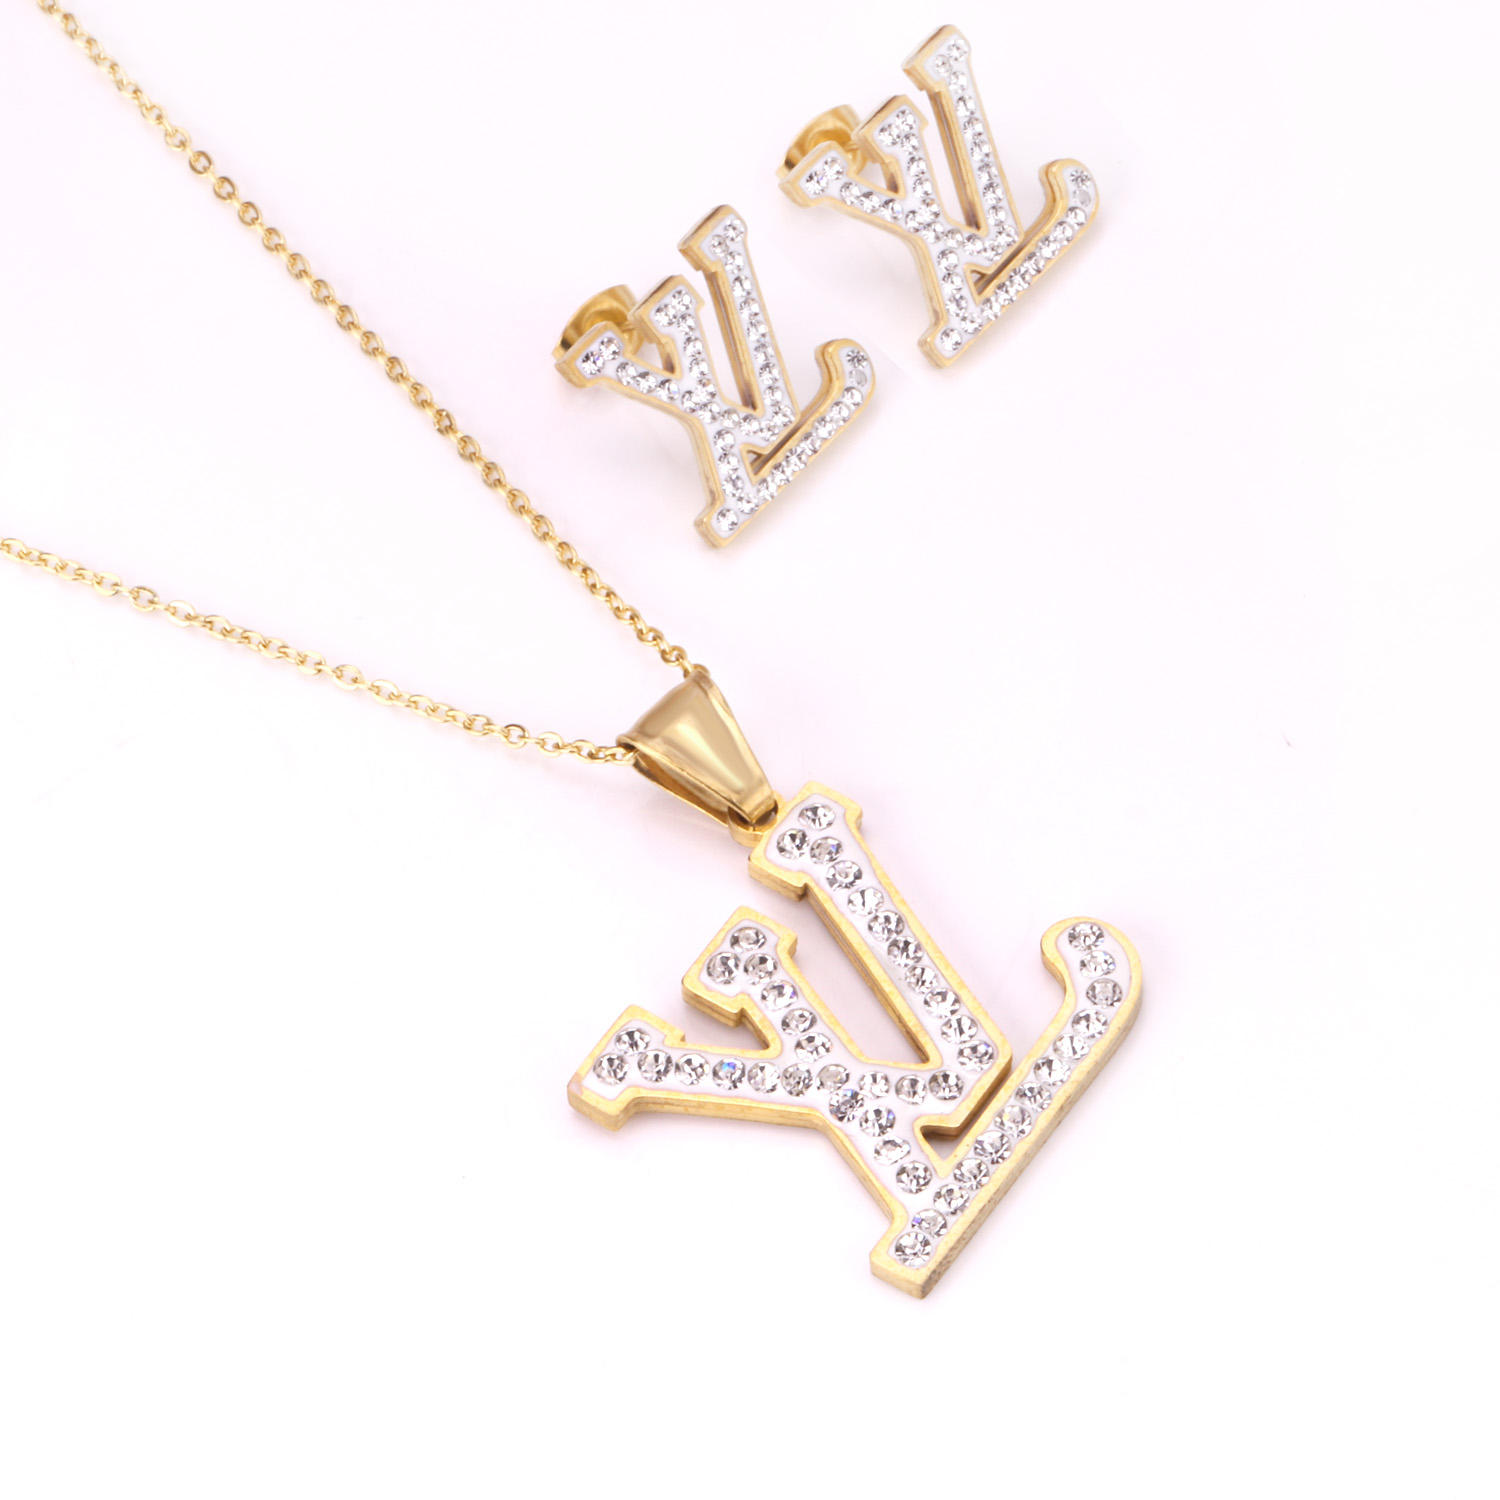 Charm Famous Women Letter Earrings and Pendant Statement Gold Plated Jewelry Sets Stainless Steel Jewelry Set